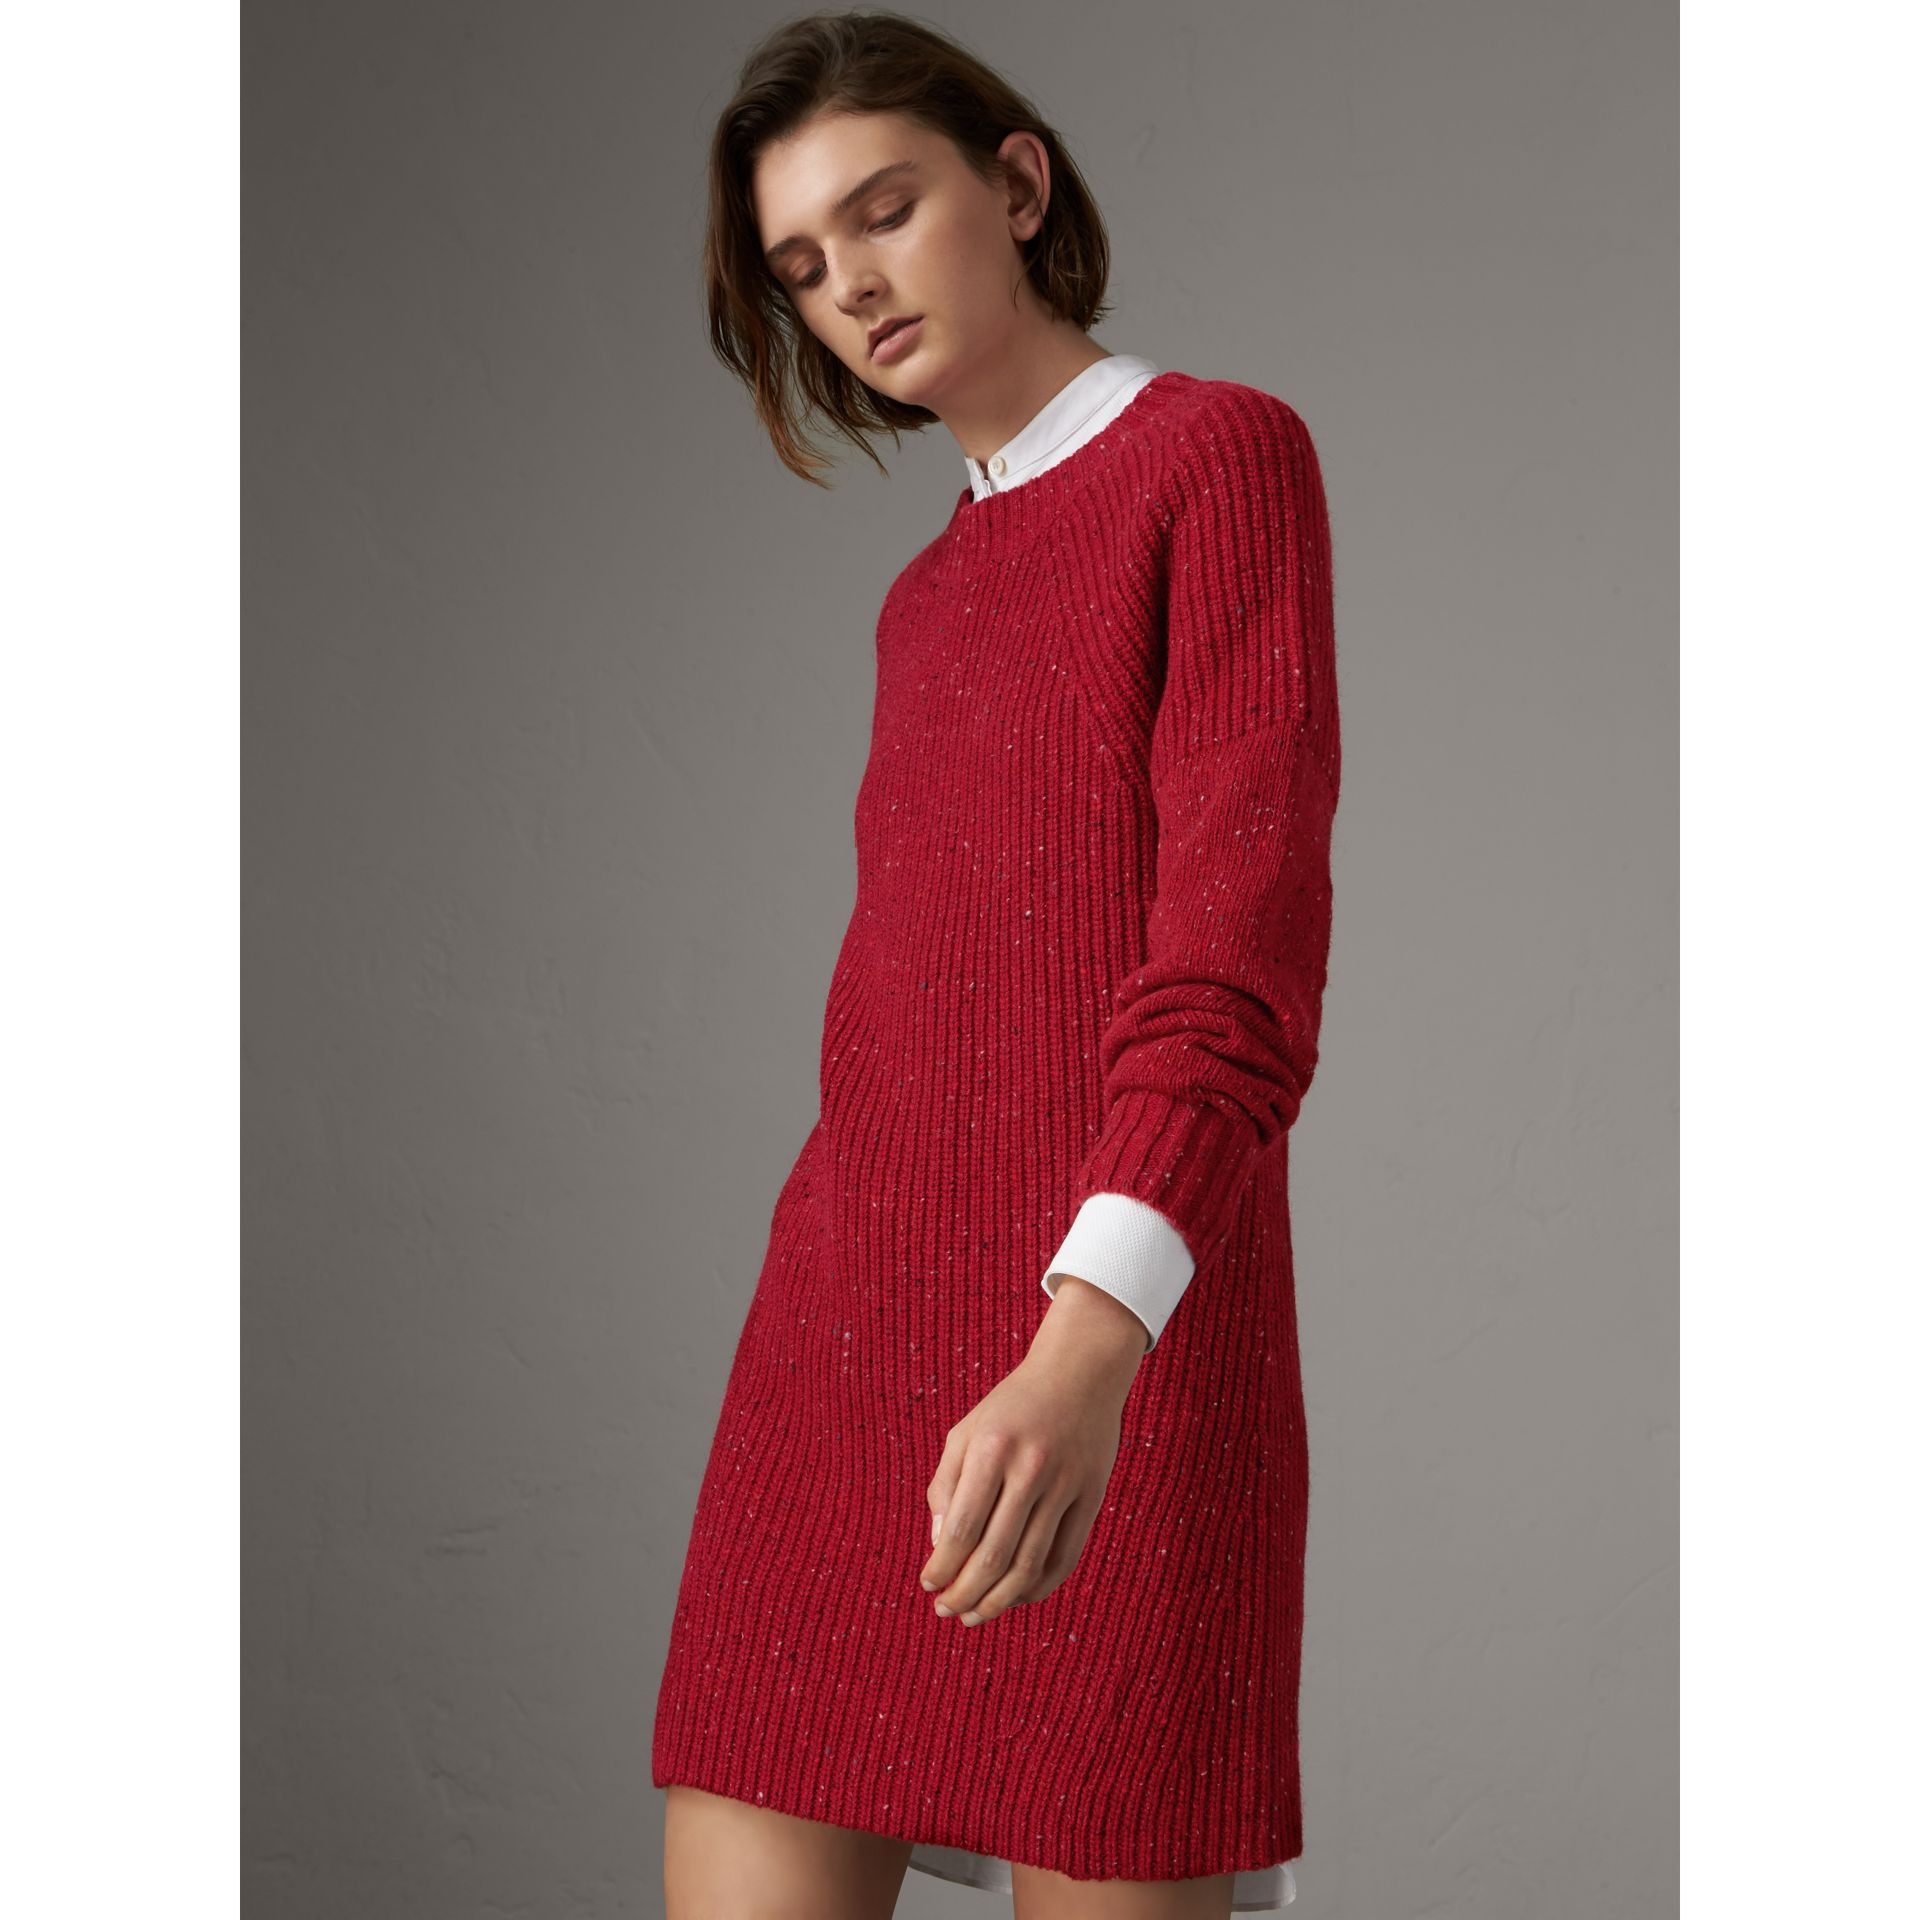 Rib Knit Wool Cashmere Mohair Sweater Dress in Coral Red - Women | Burberry United Kingdom - gallery image 3